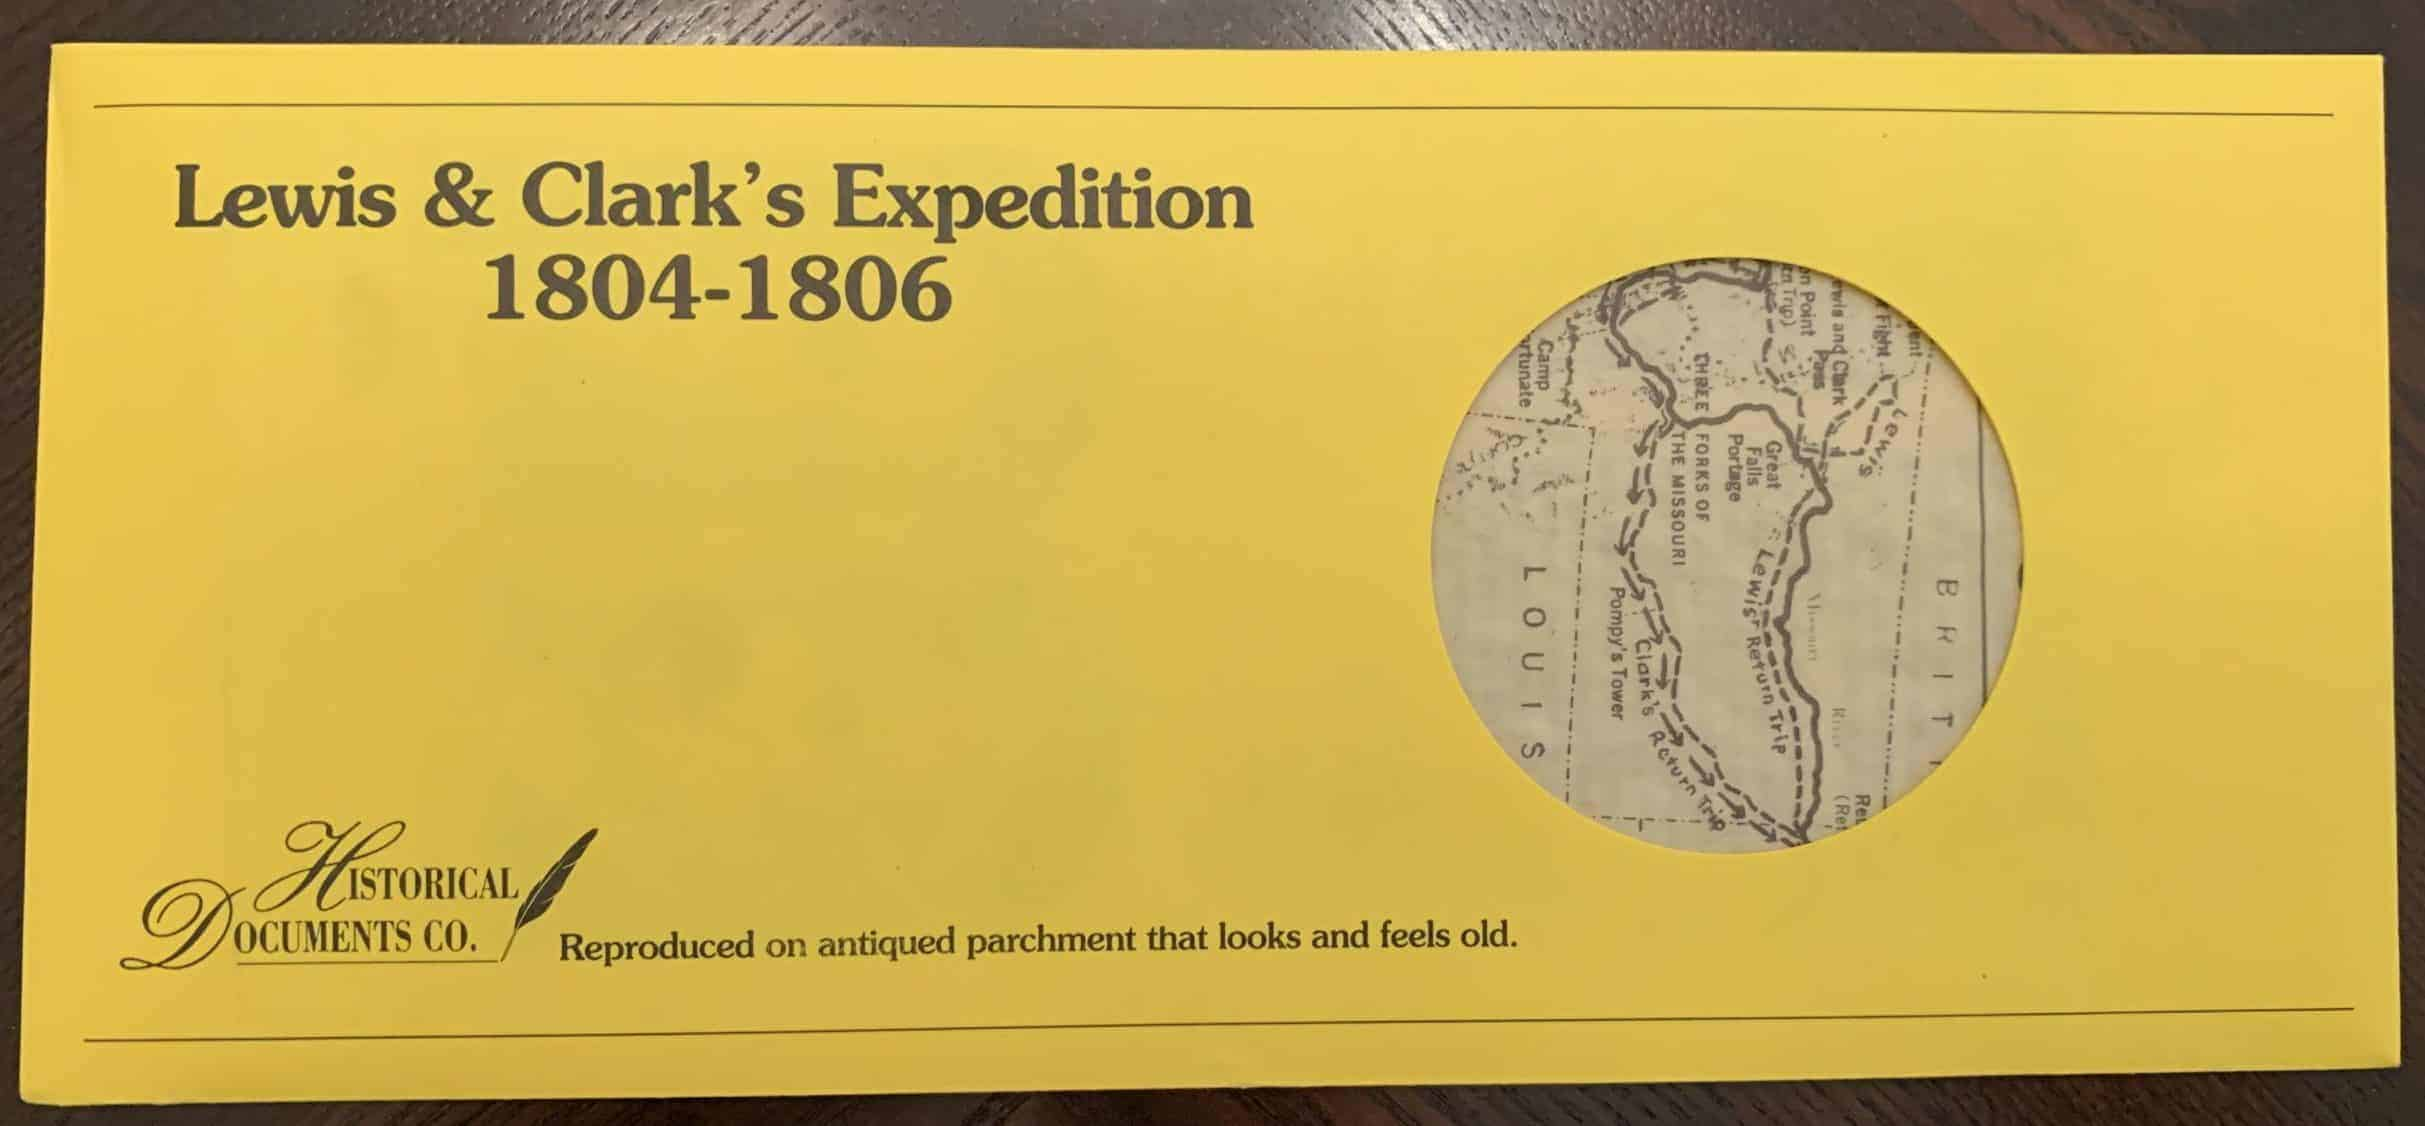 Lewis & Clark's Expedition 1804-1806